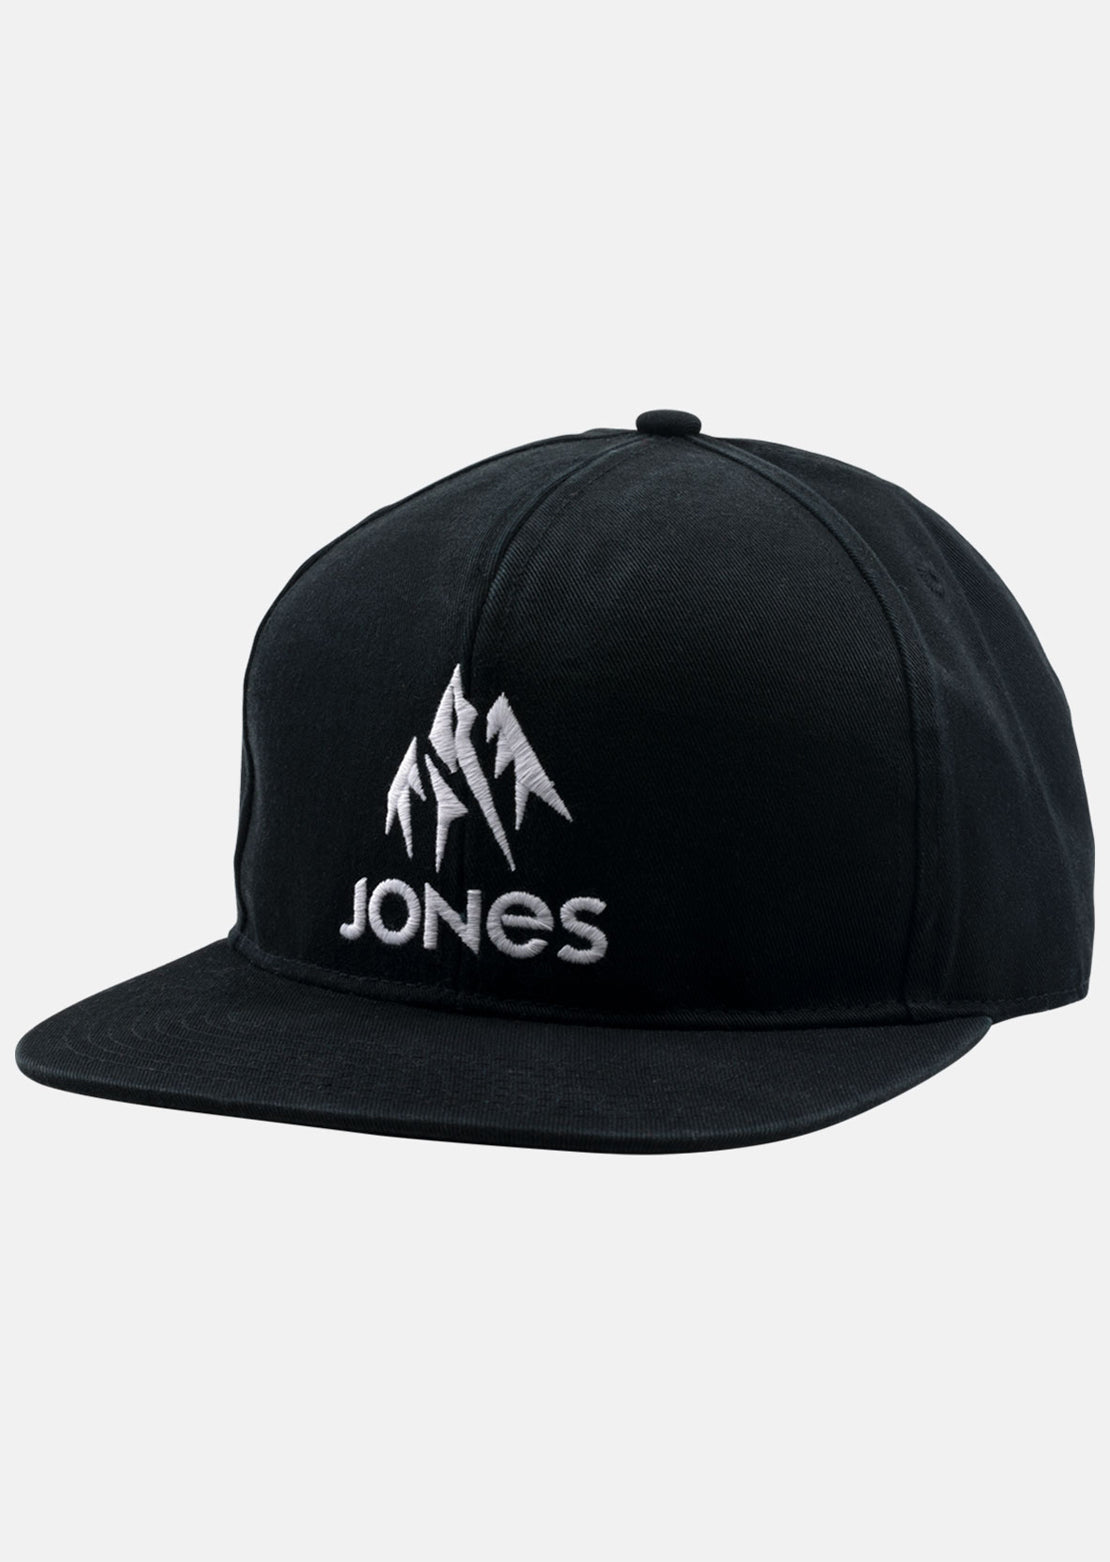 Jones Jackson Cap Black/White